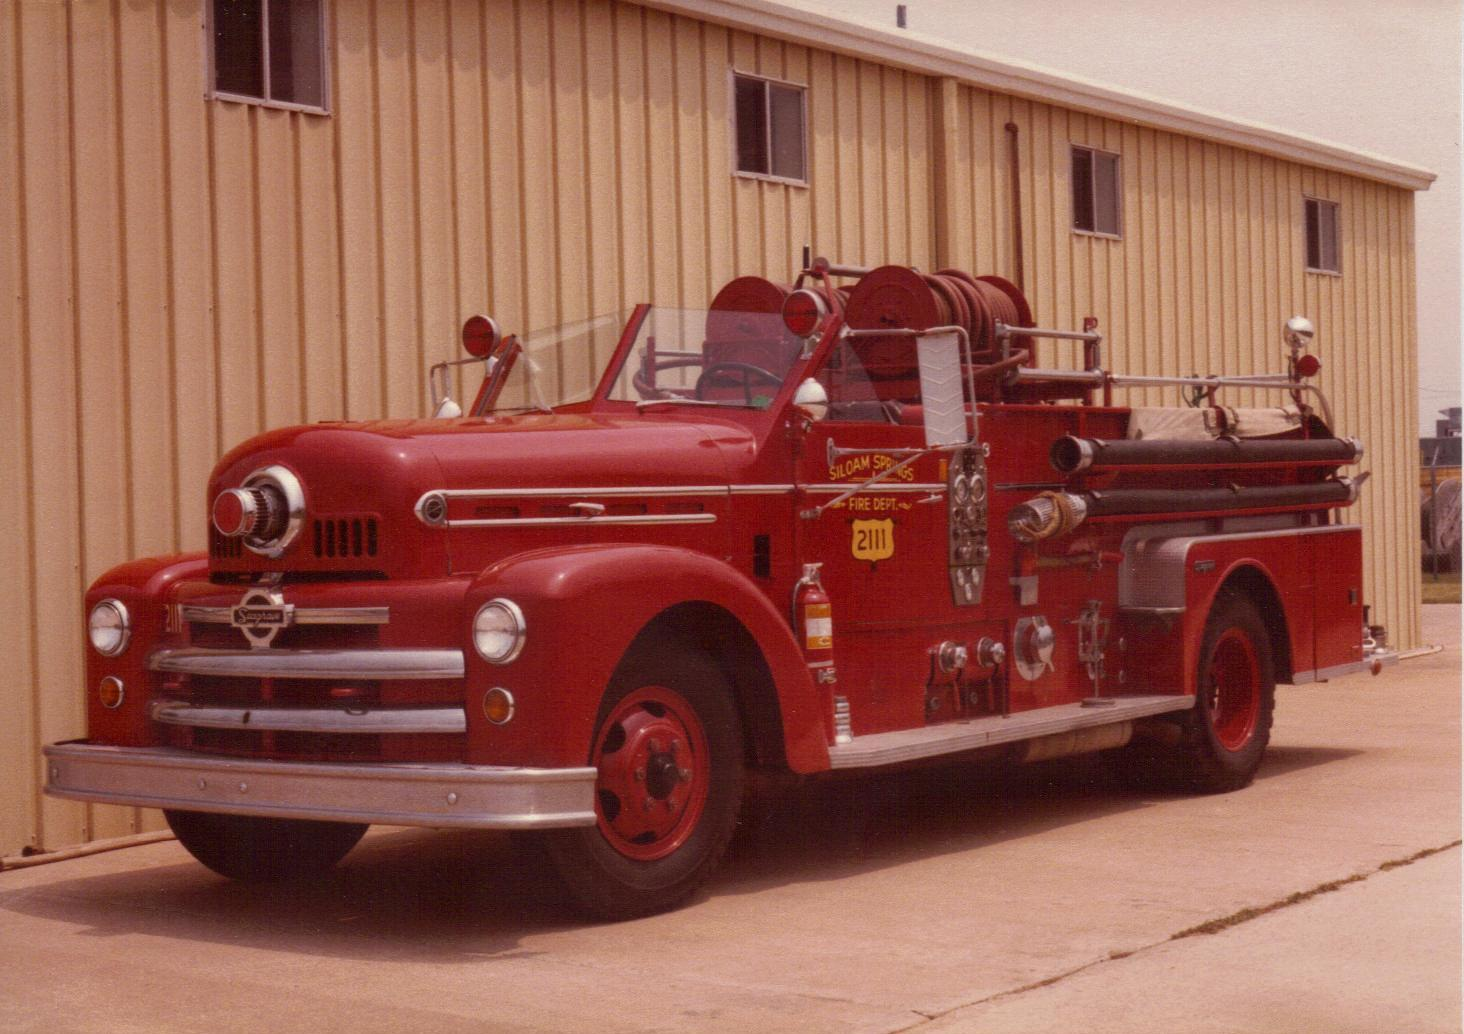 SSFD old 2111 1950s Seagrave open cab fire engine at Station 3